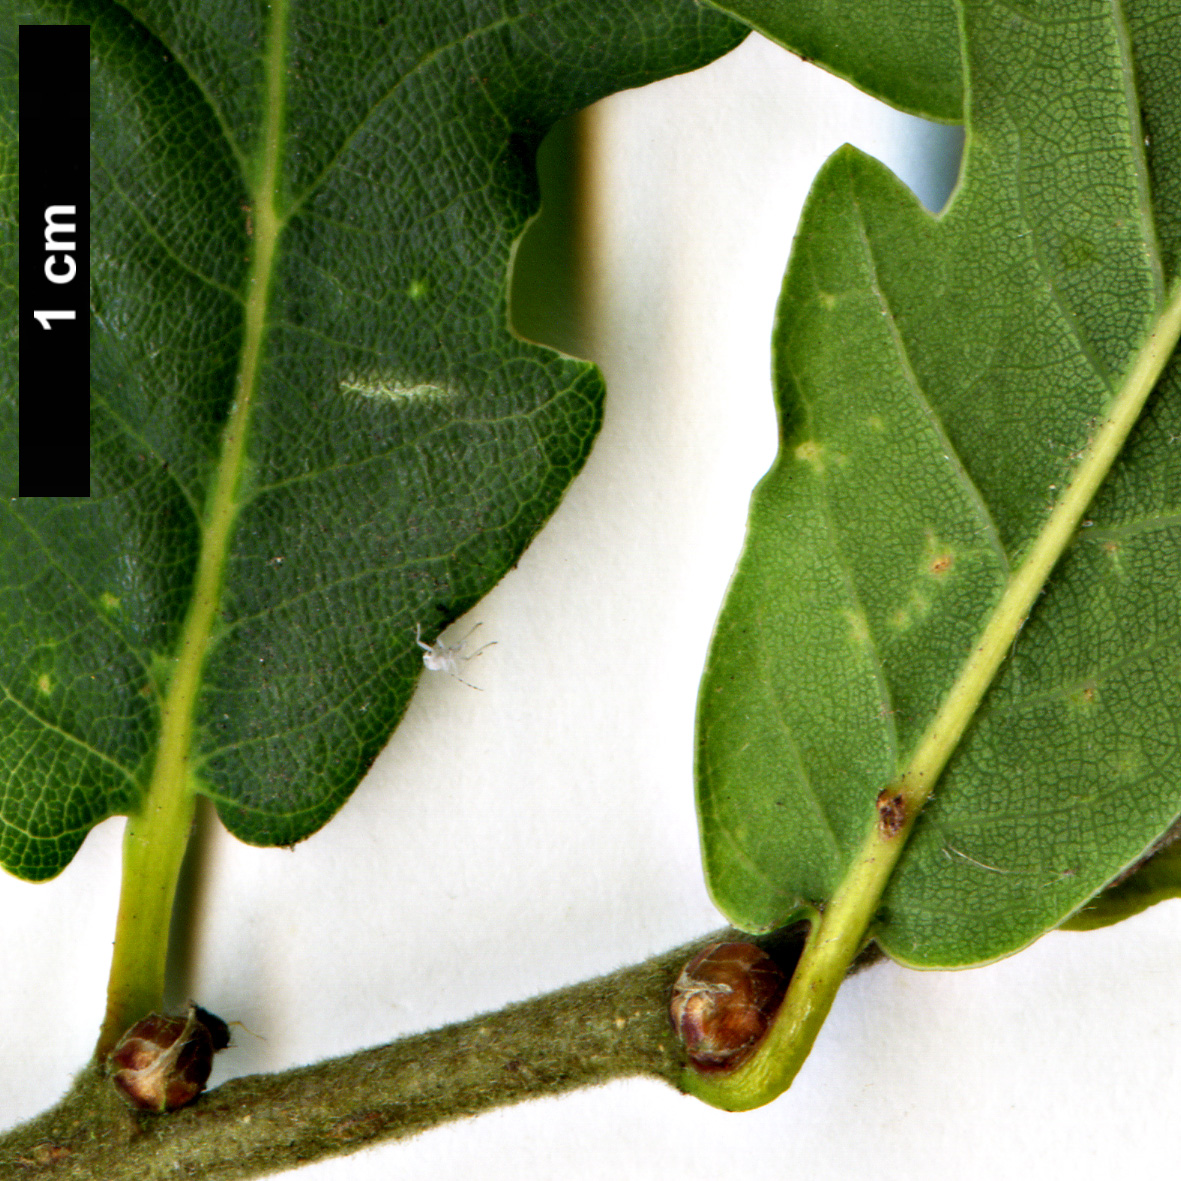 High resolution image: Family: Fagaceae - Genus: Quercus - Taxon: robur × Q.serrata